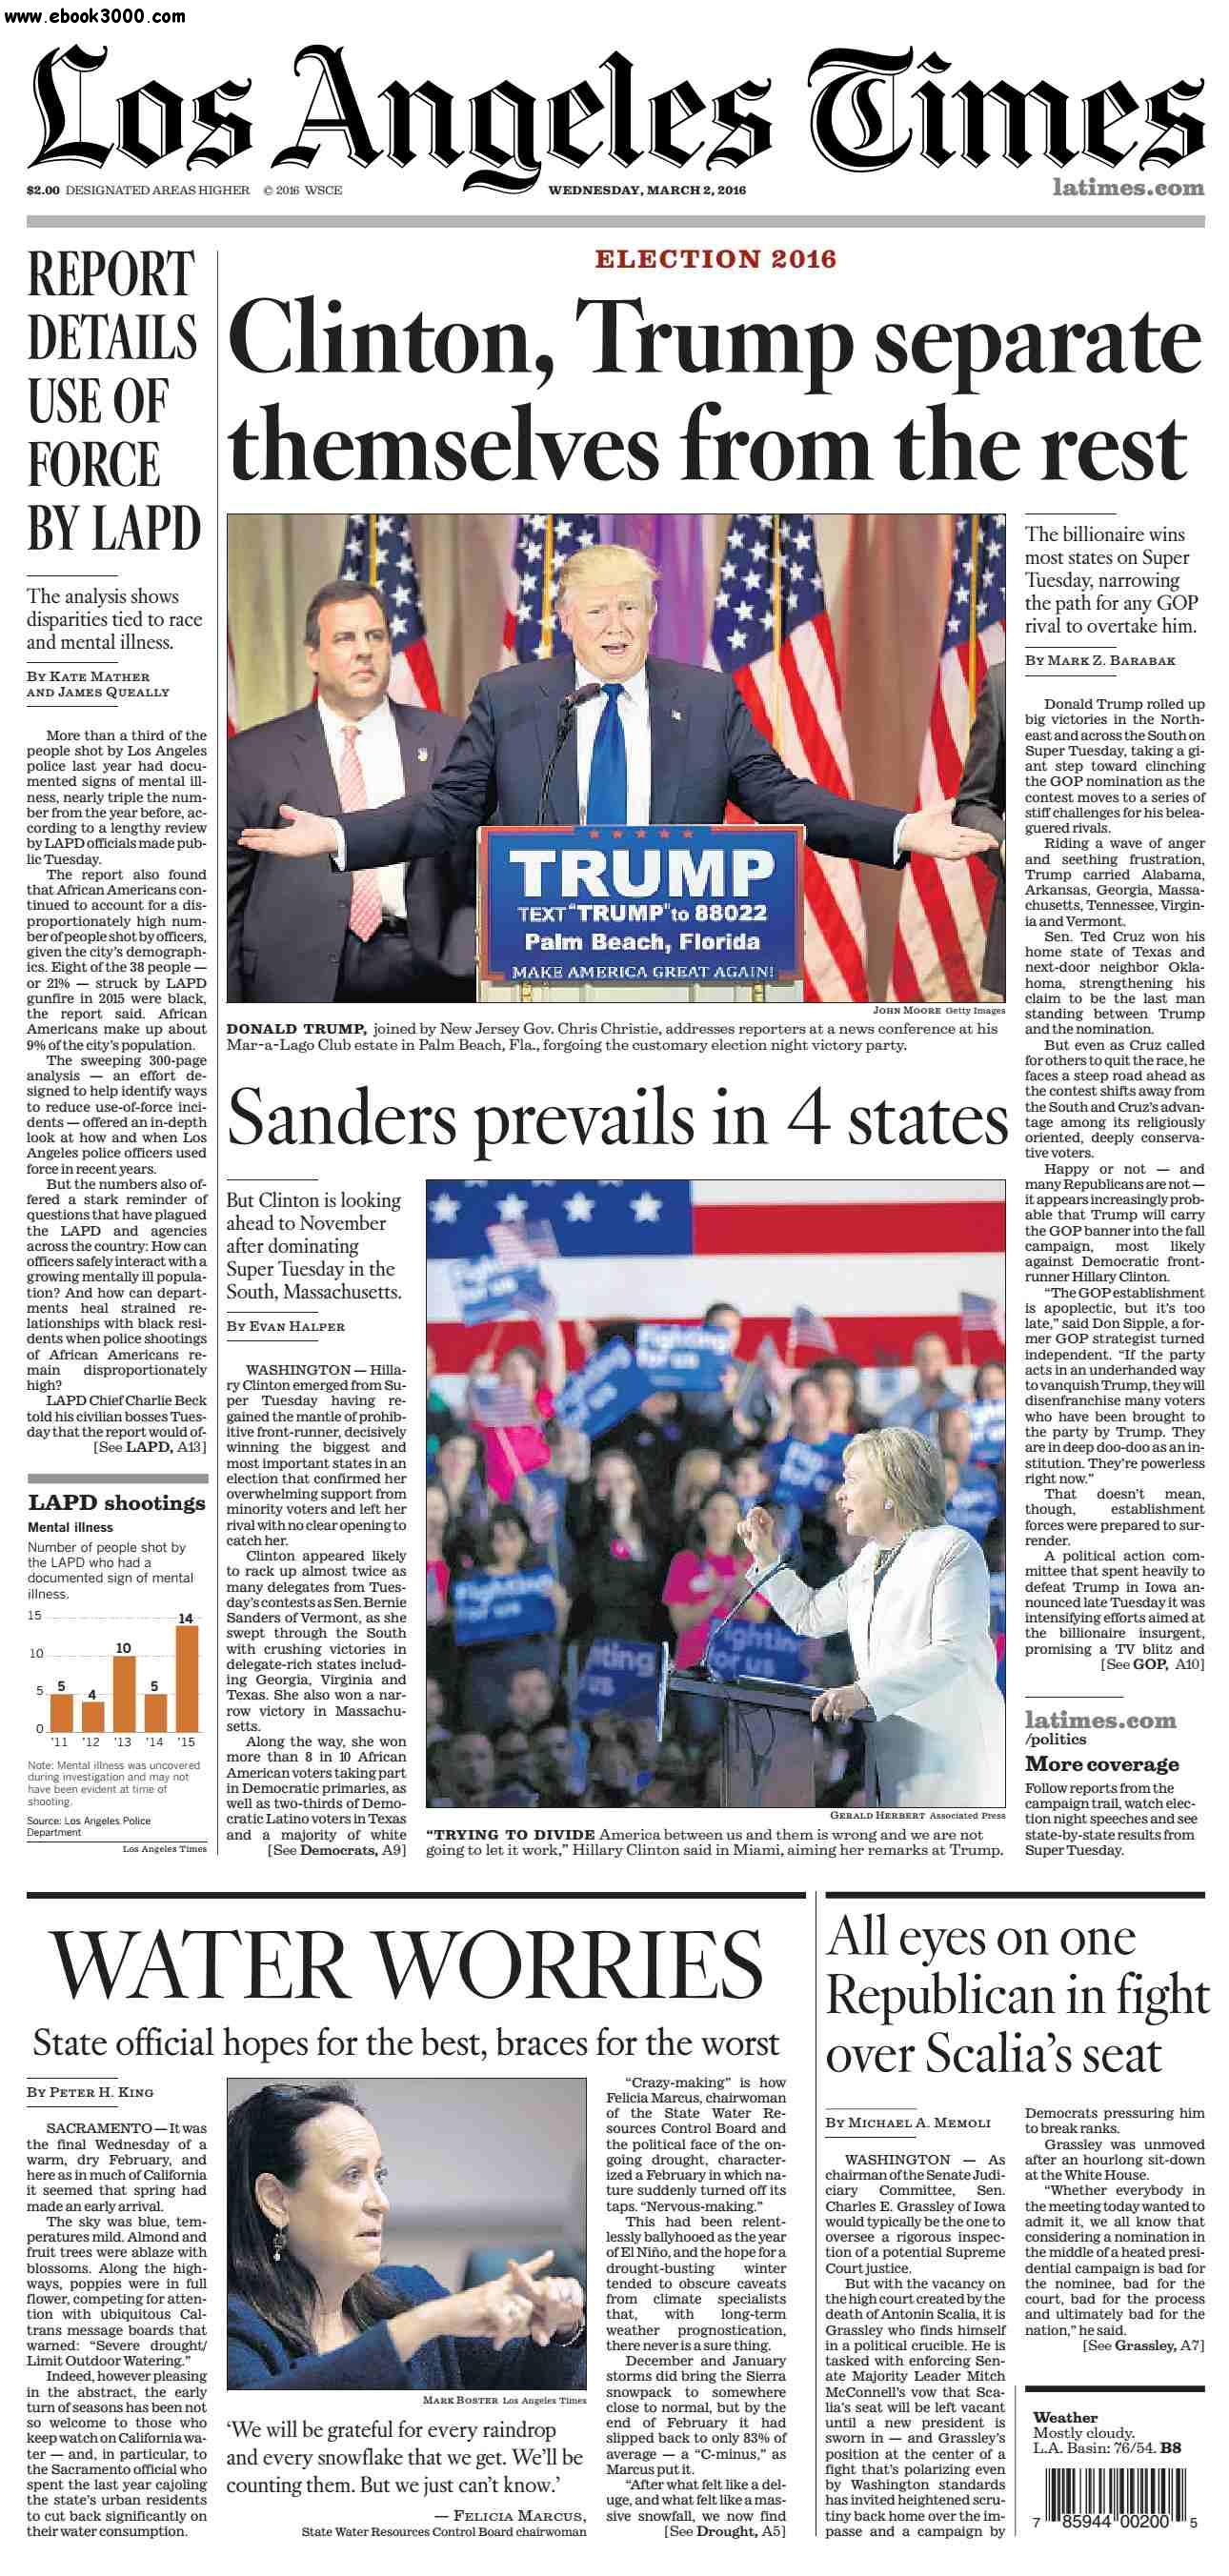 Los Angeles Times  March 02, 2016 free download